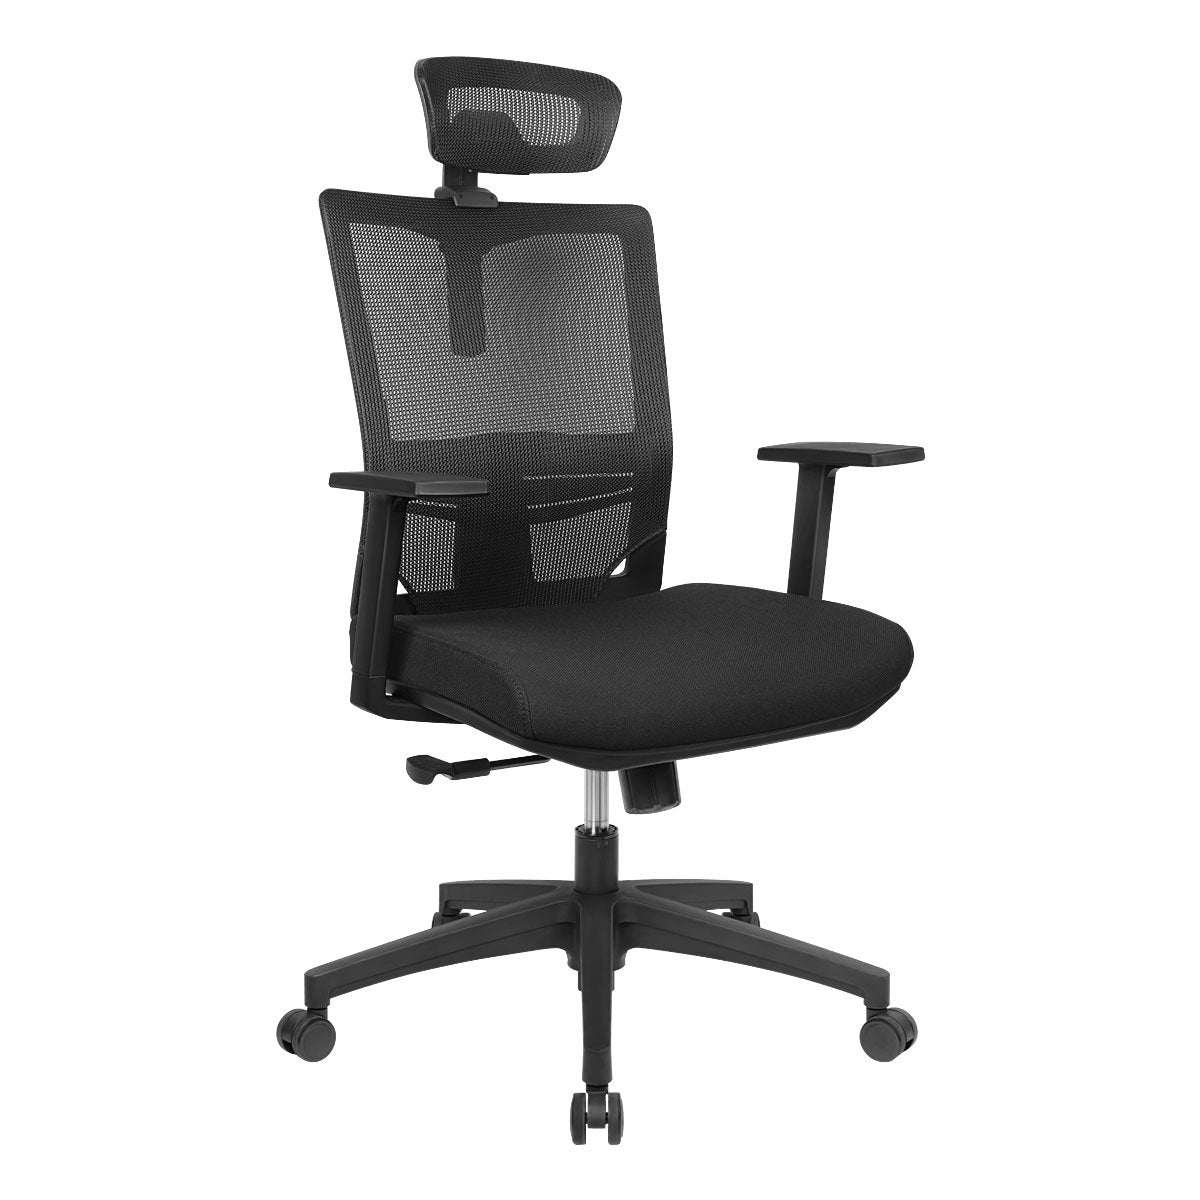 RAMINE Ergonomic Office Chair With Headrest